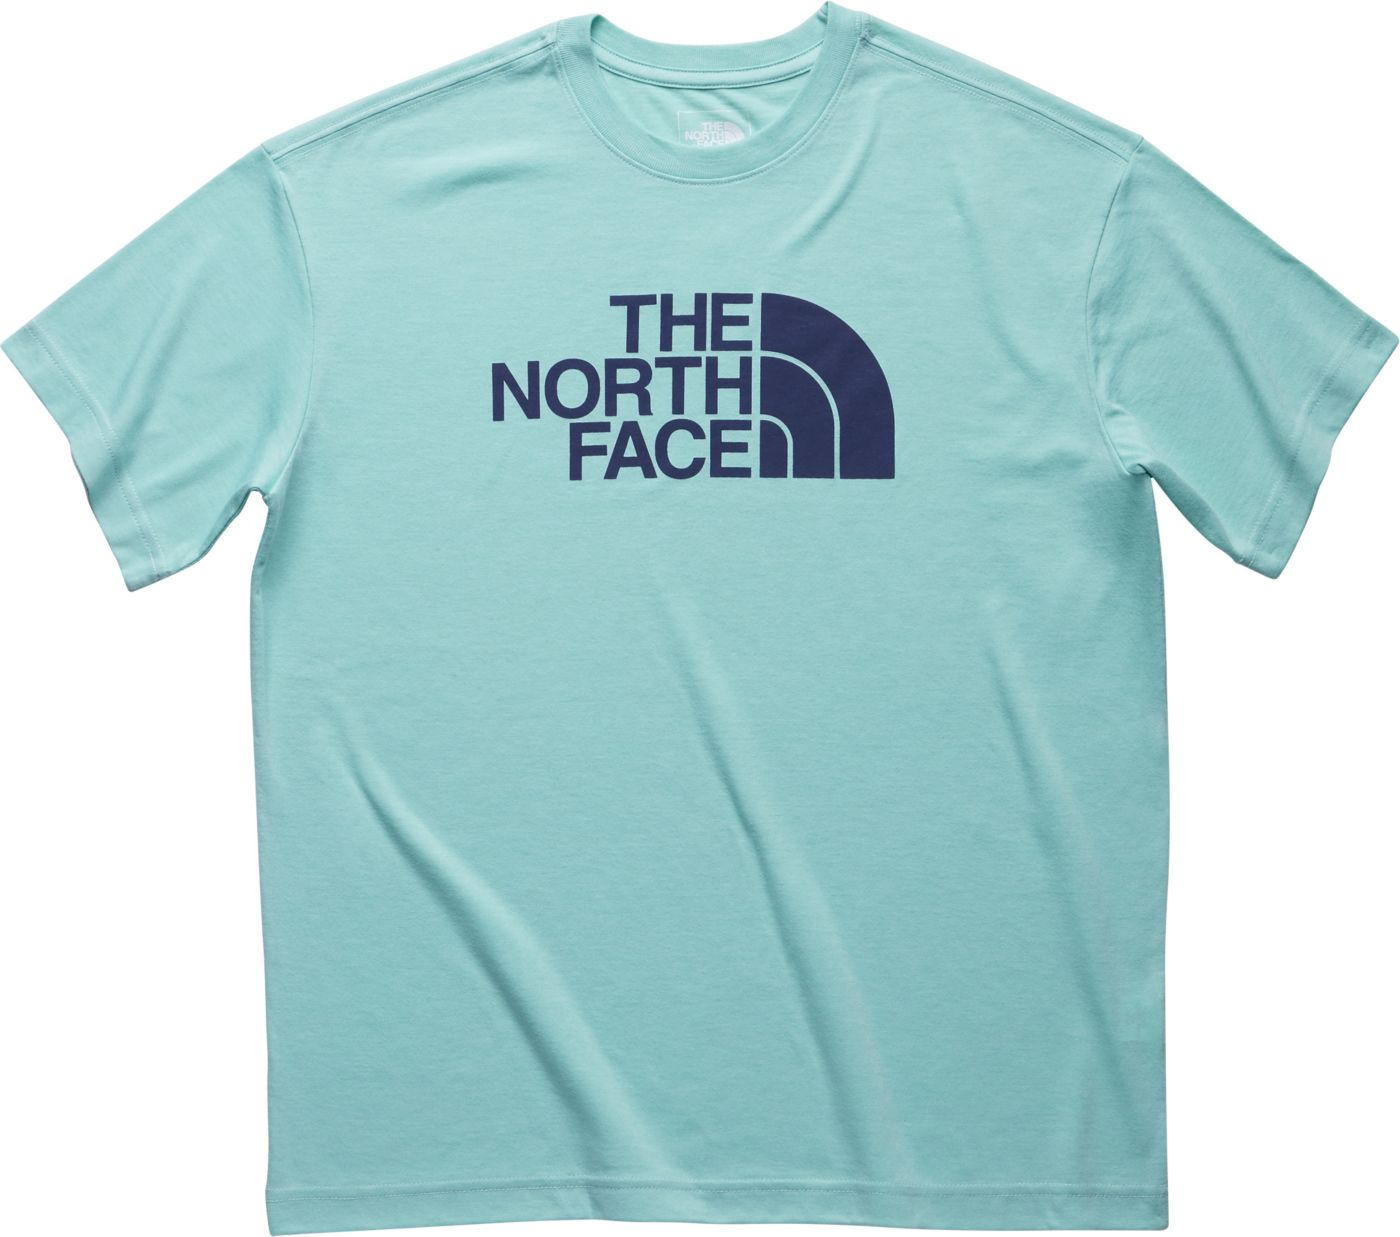 The North Face Women's Short Sleeve Relaxed Half Dome T-Shirt